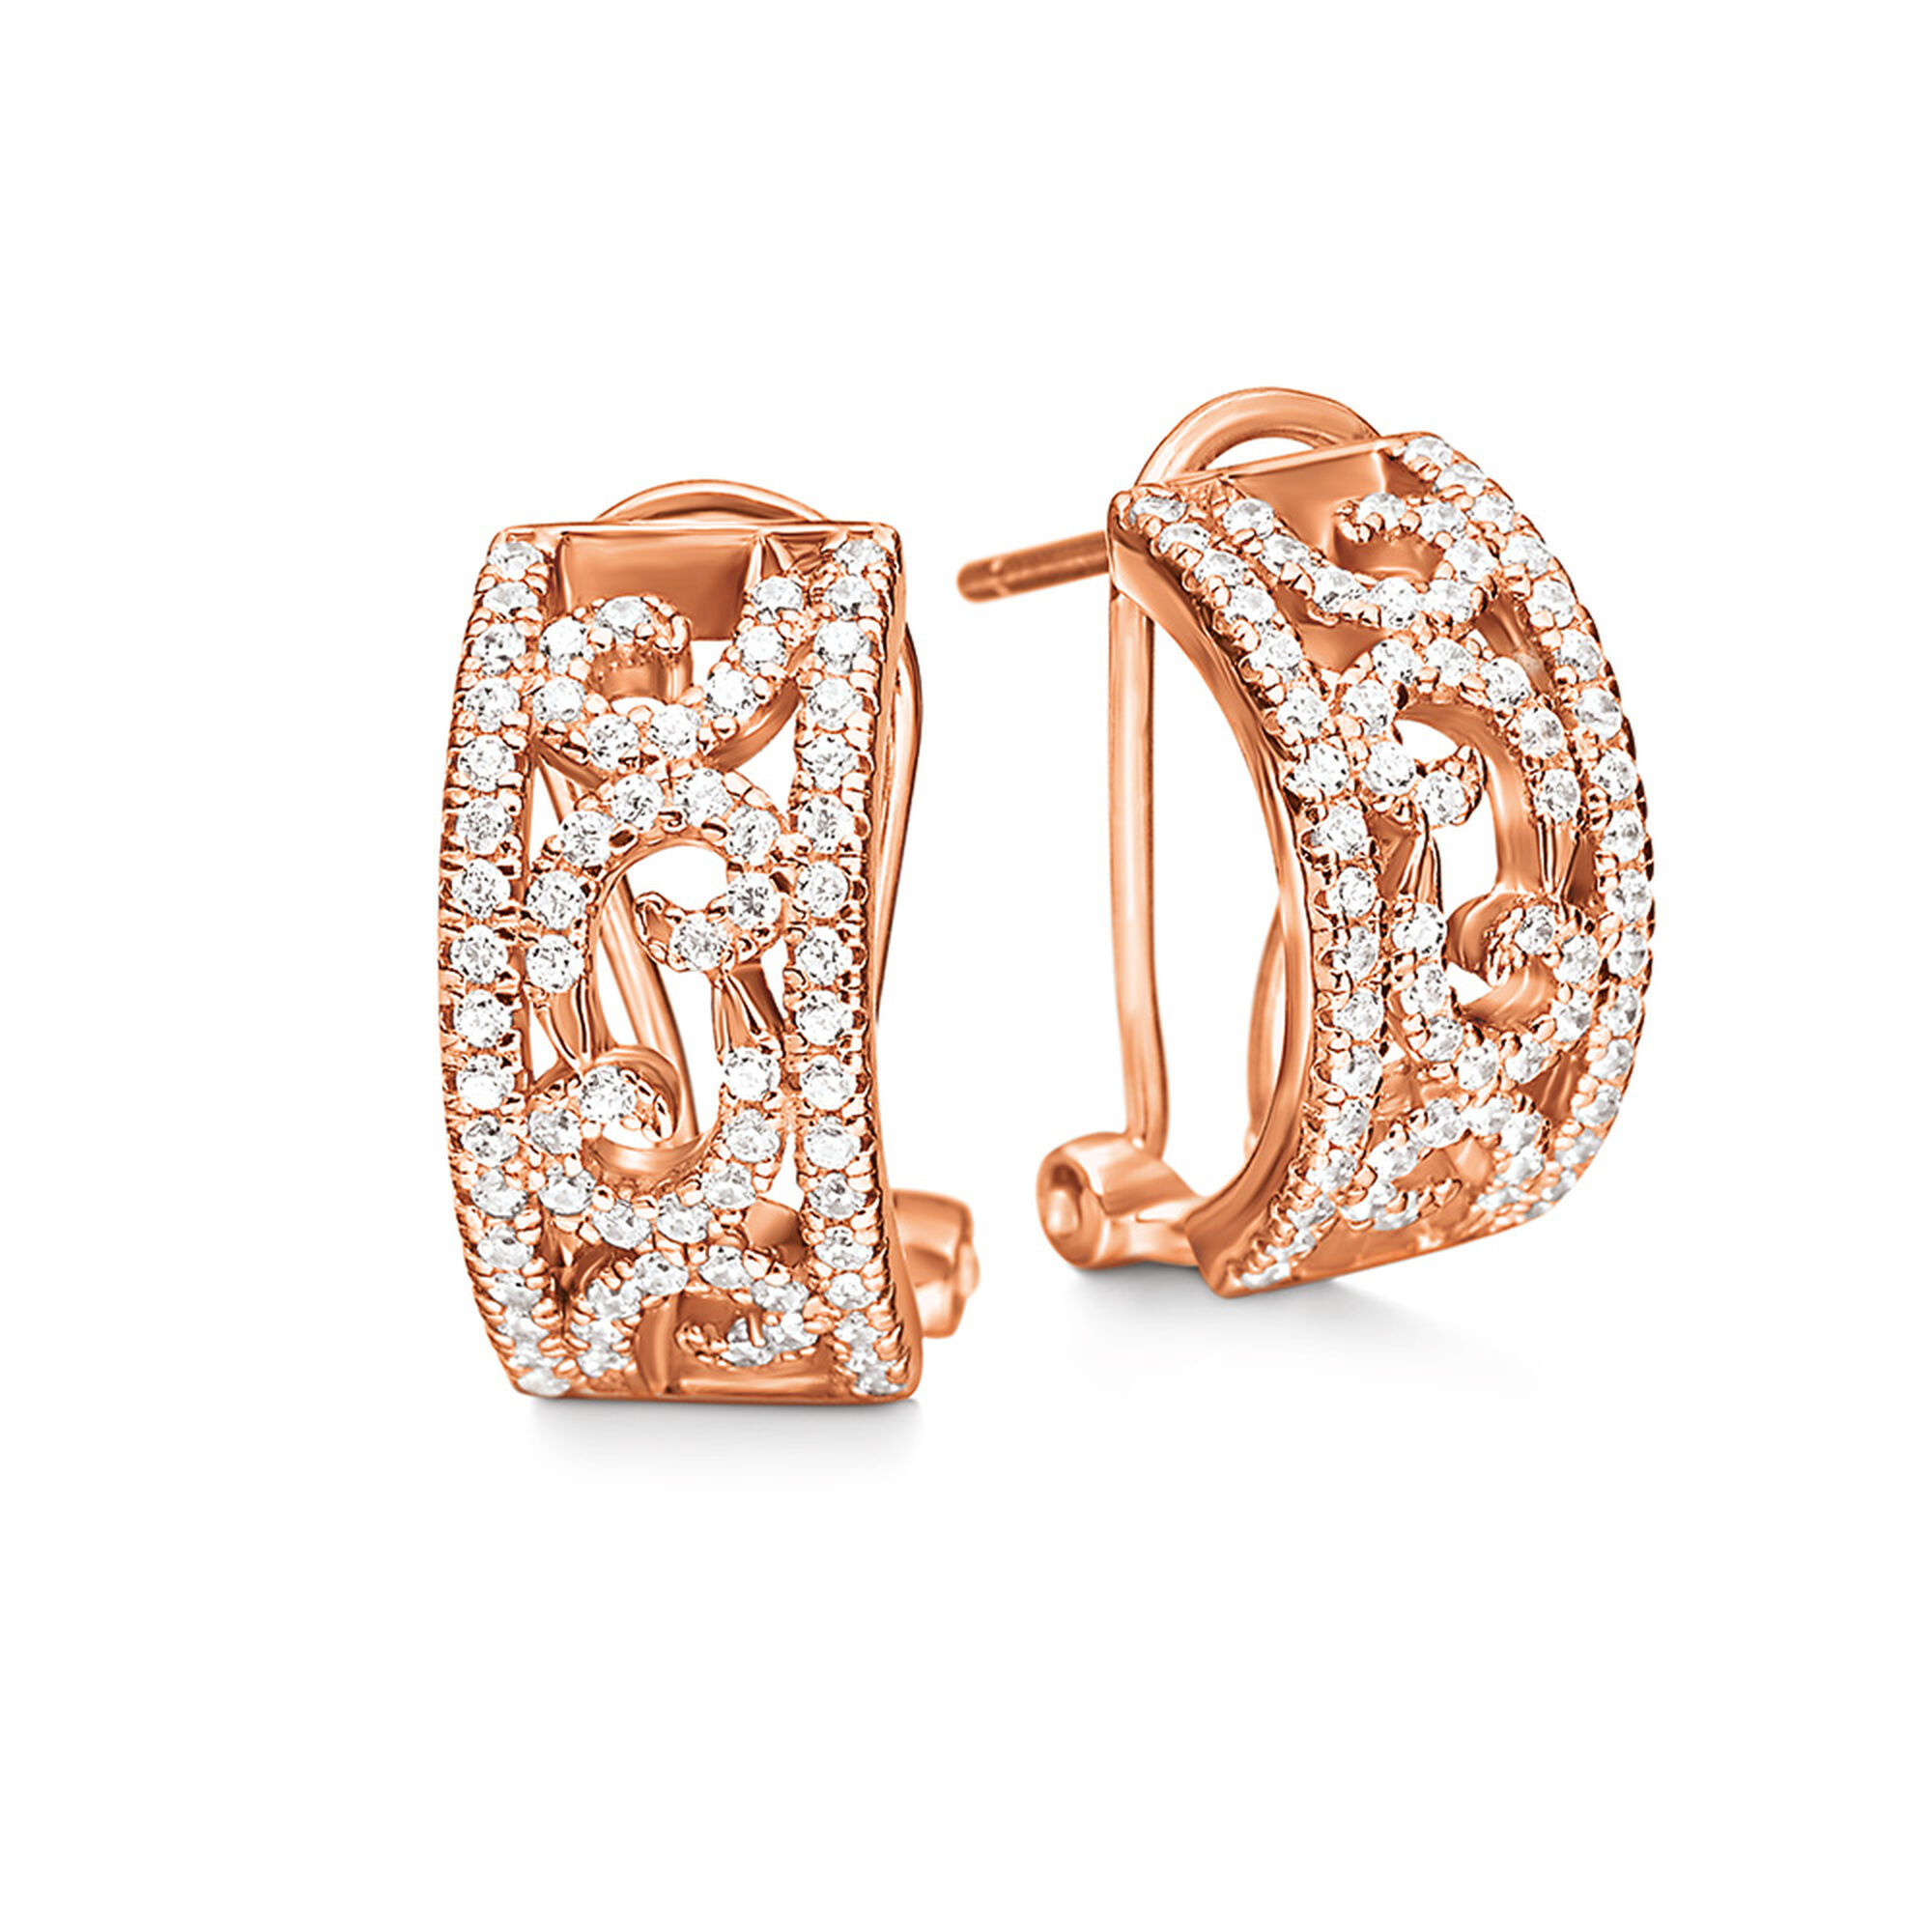 Fashionably Silver Temptation Rose Gold Plated Stone Earrings Hires